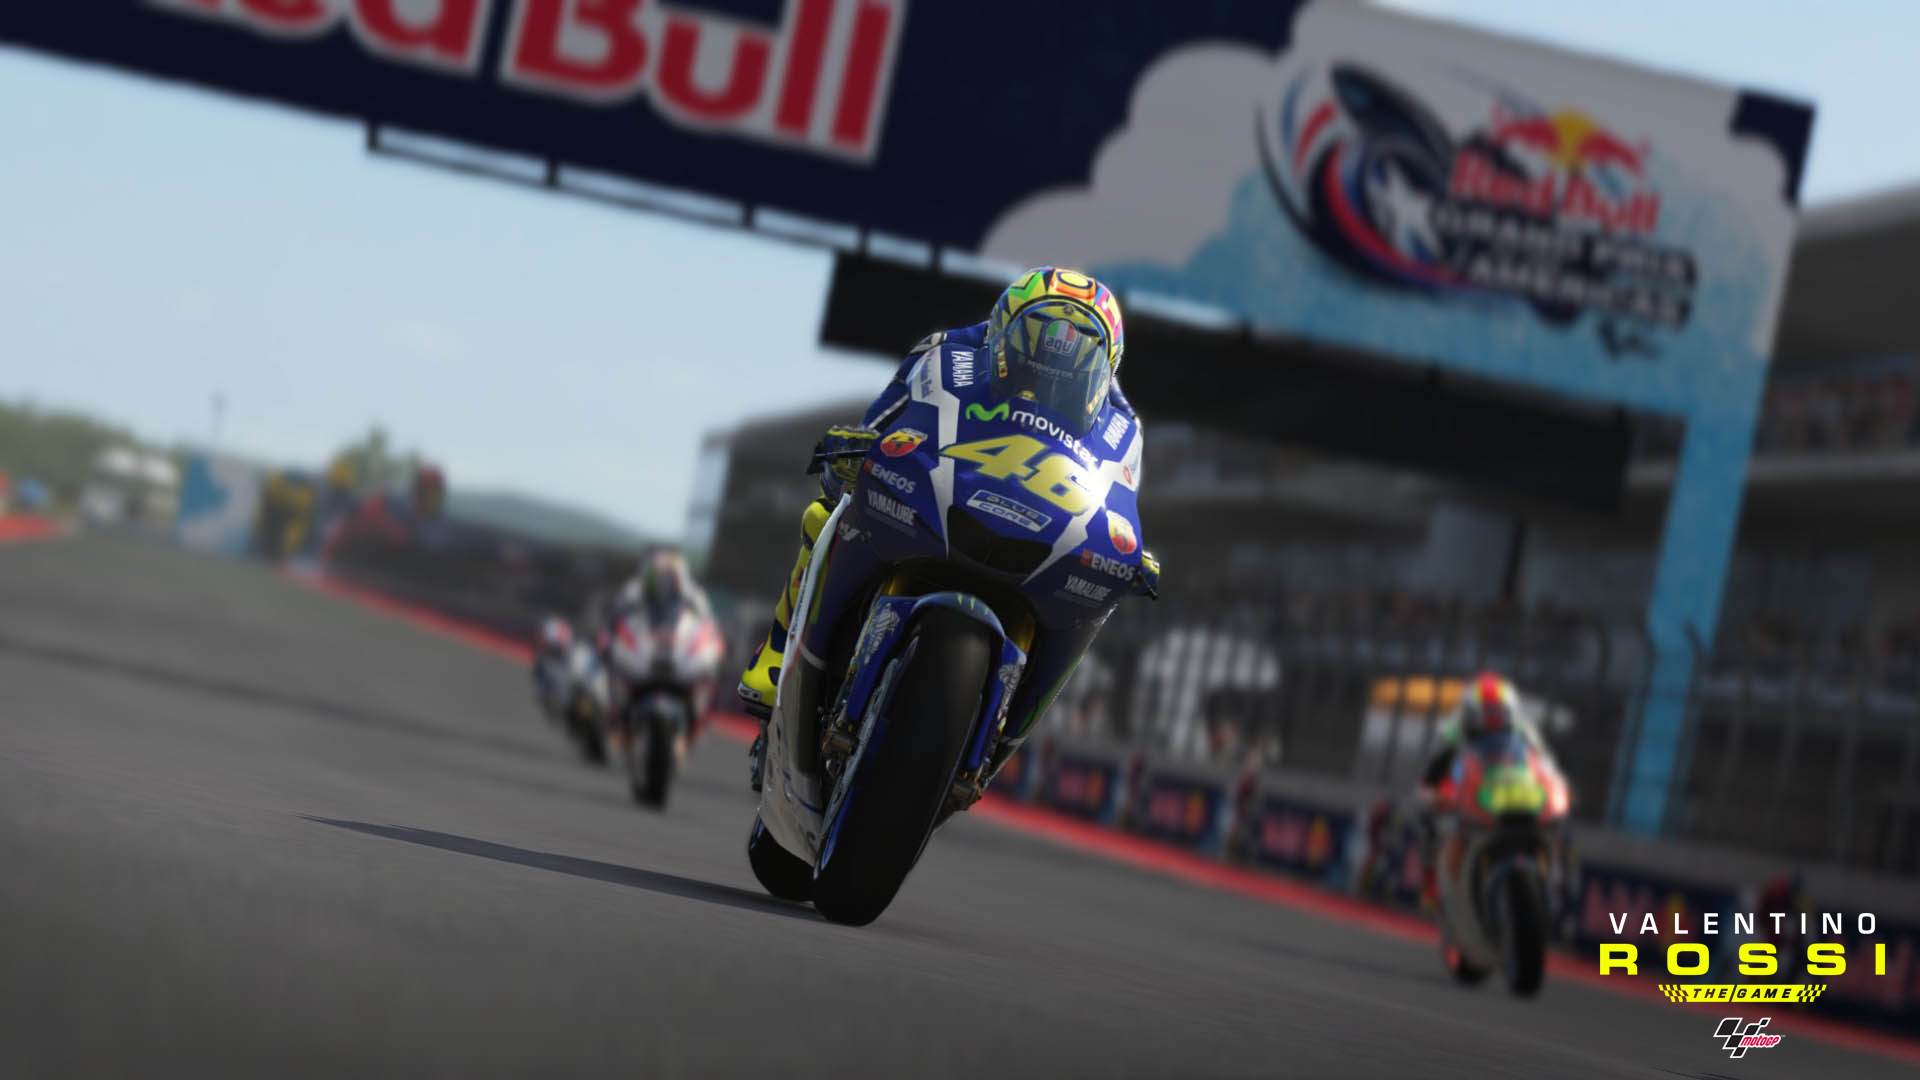 Download Valentino Rossi The Game Full PC Game